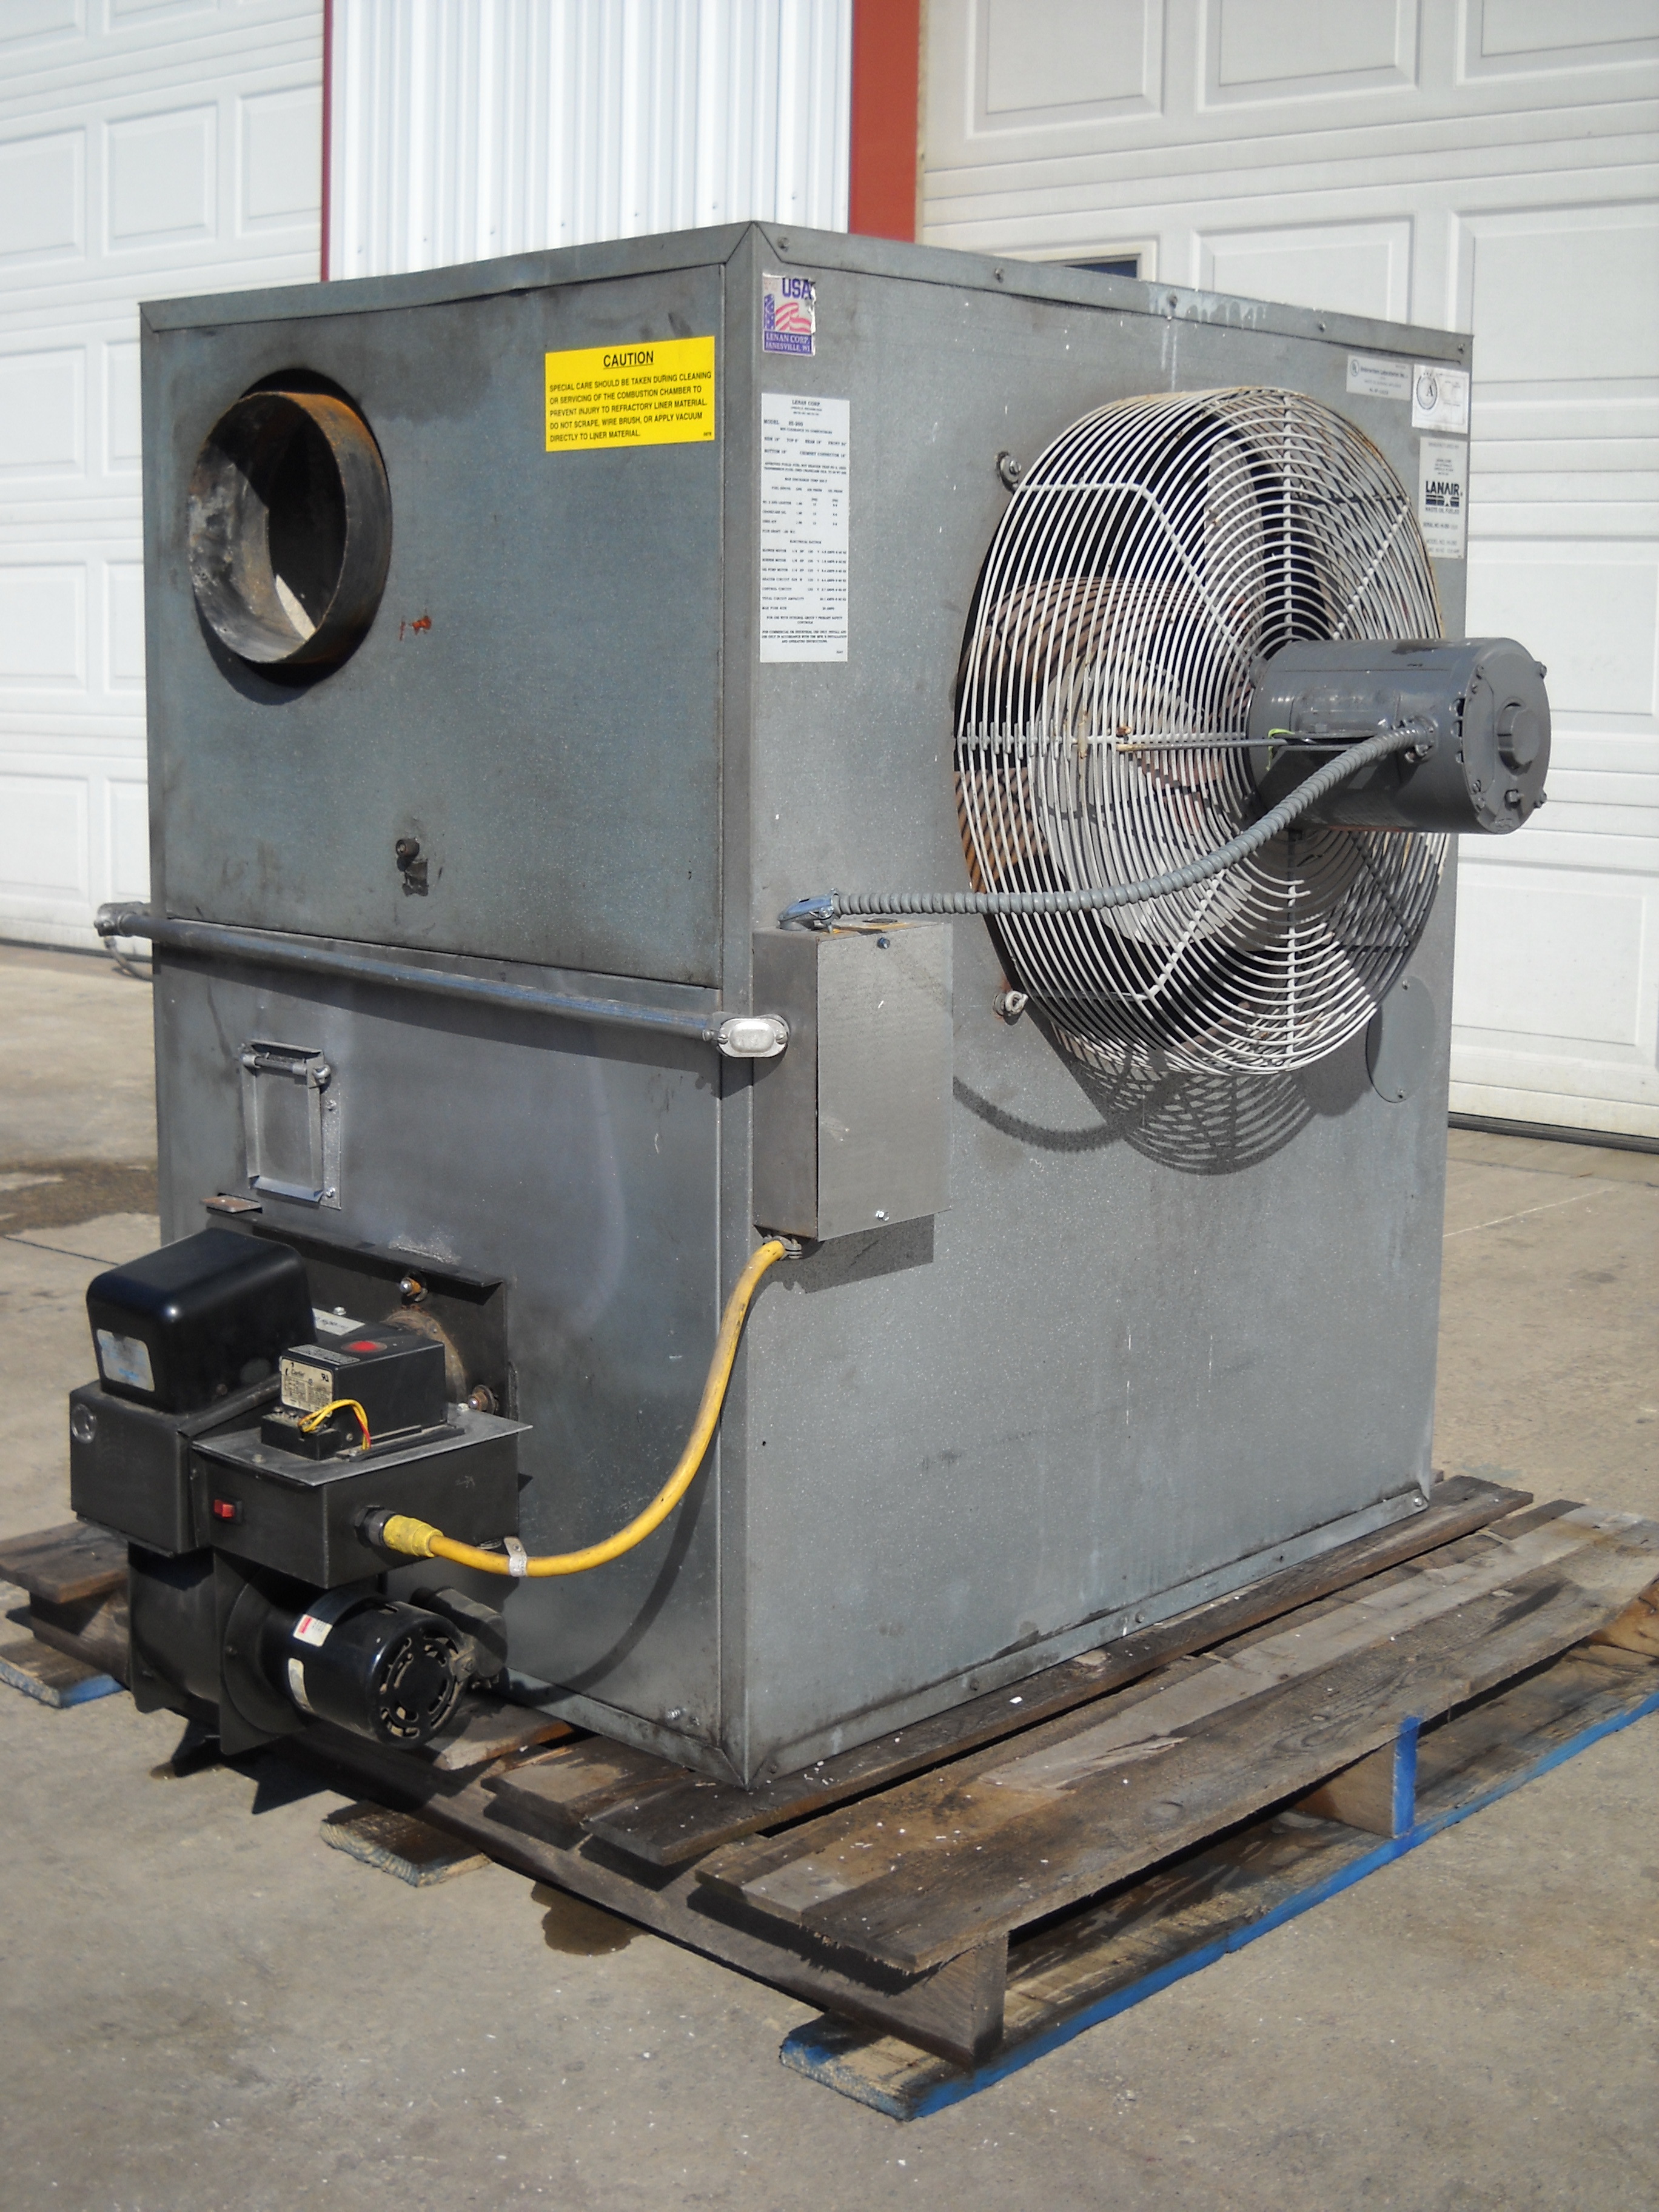 Lanair We Have Used Oil Heaters For Sale Of All Brands